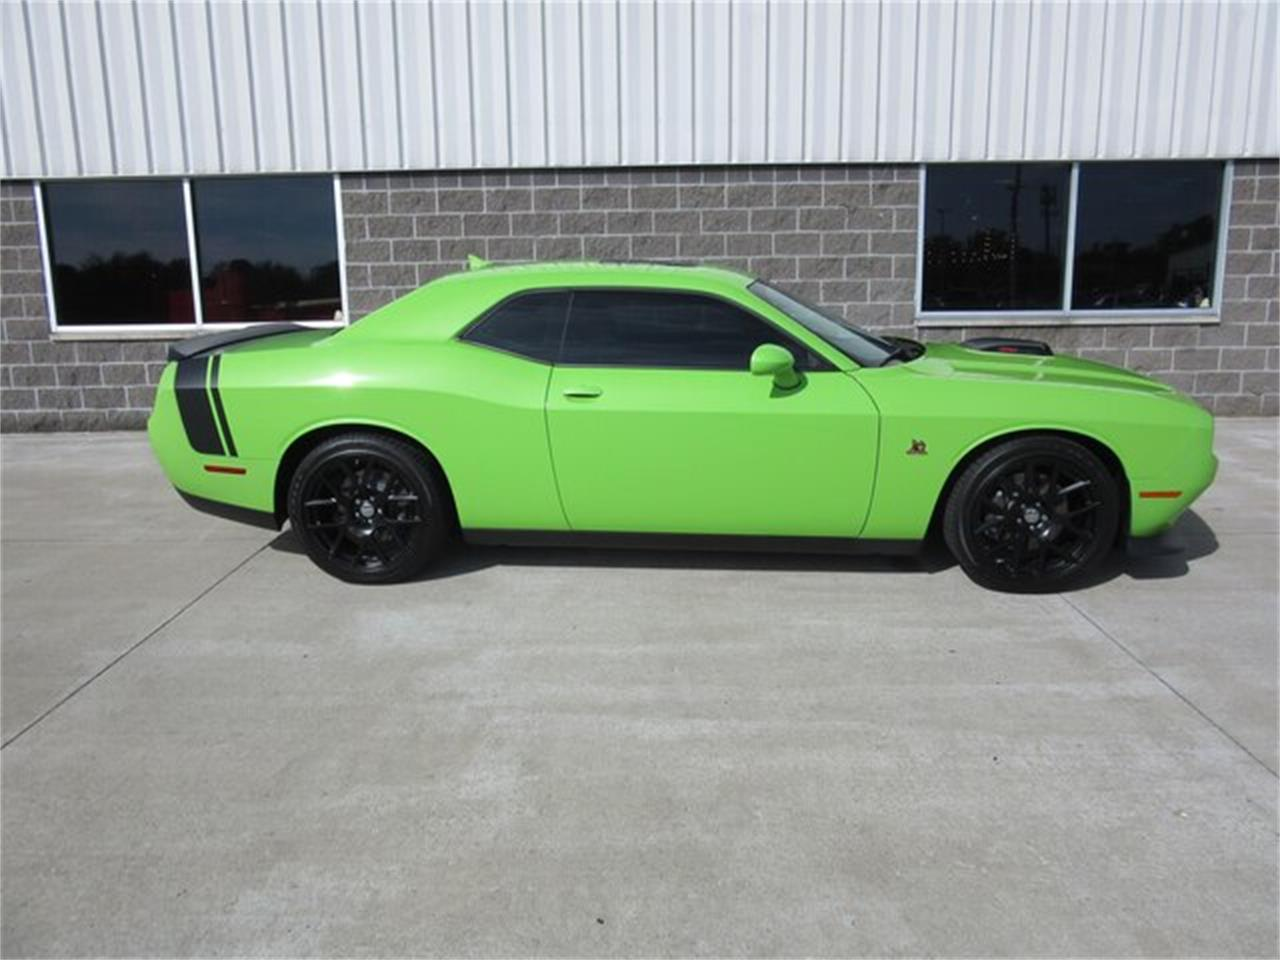 2015 Dodge Challenger (CC-1274351) for sale in Greenwood, Indiana